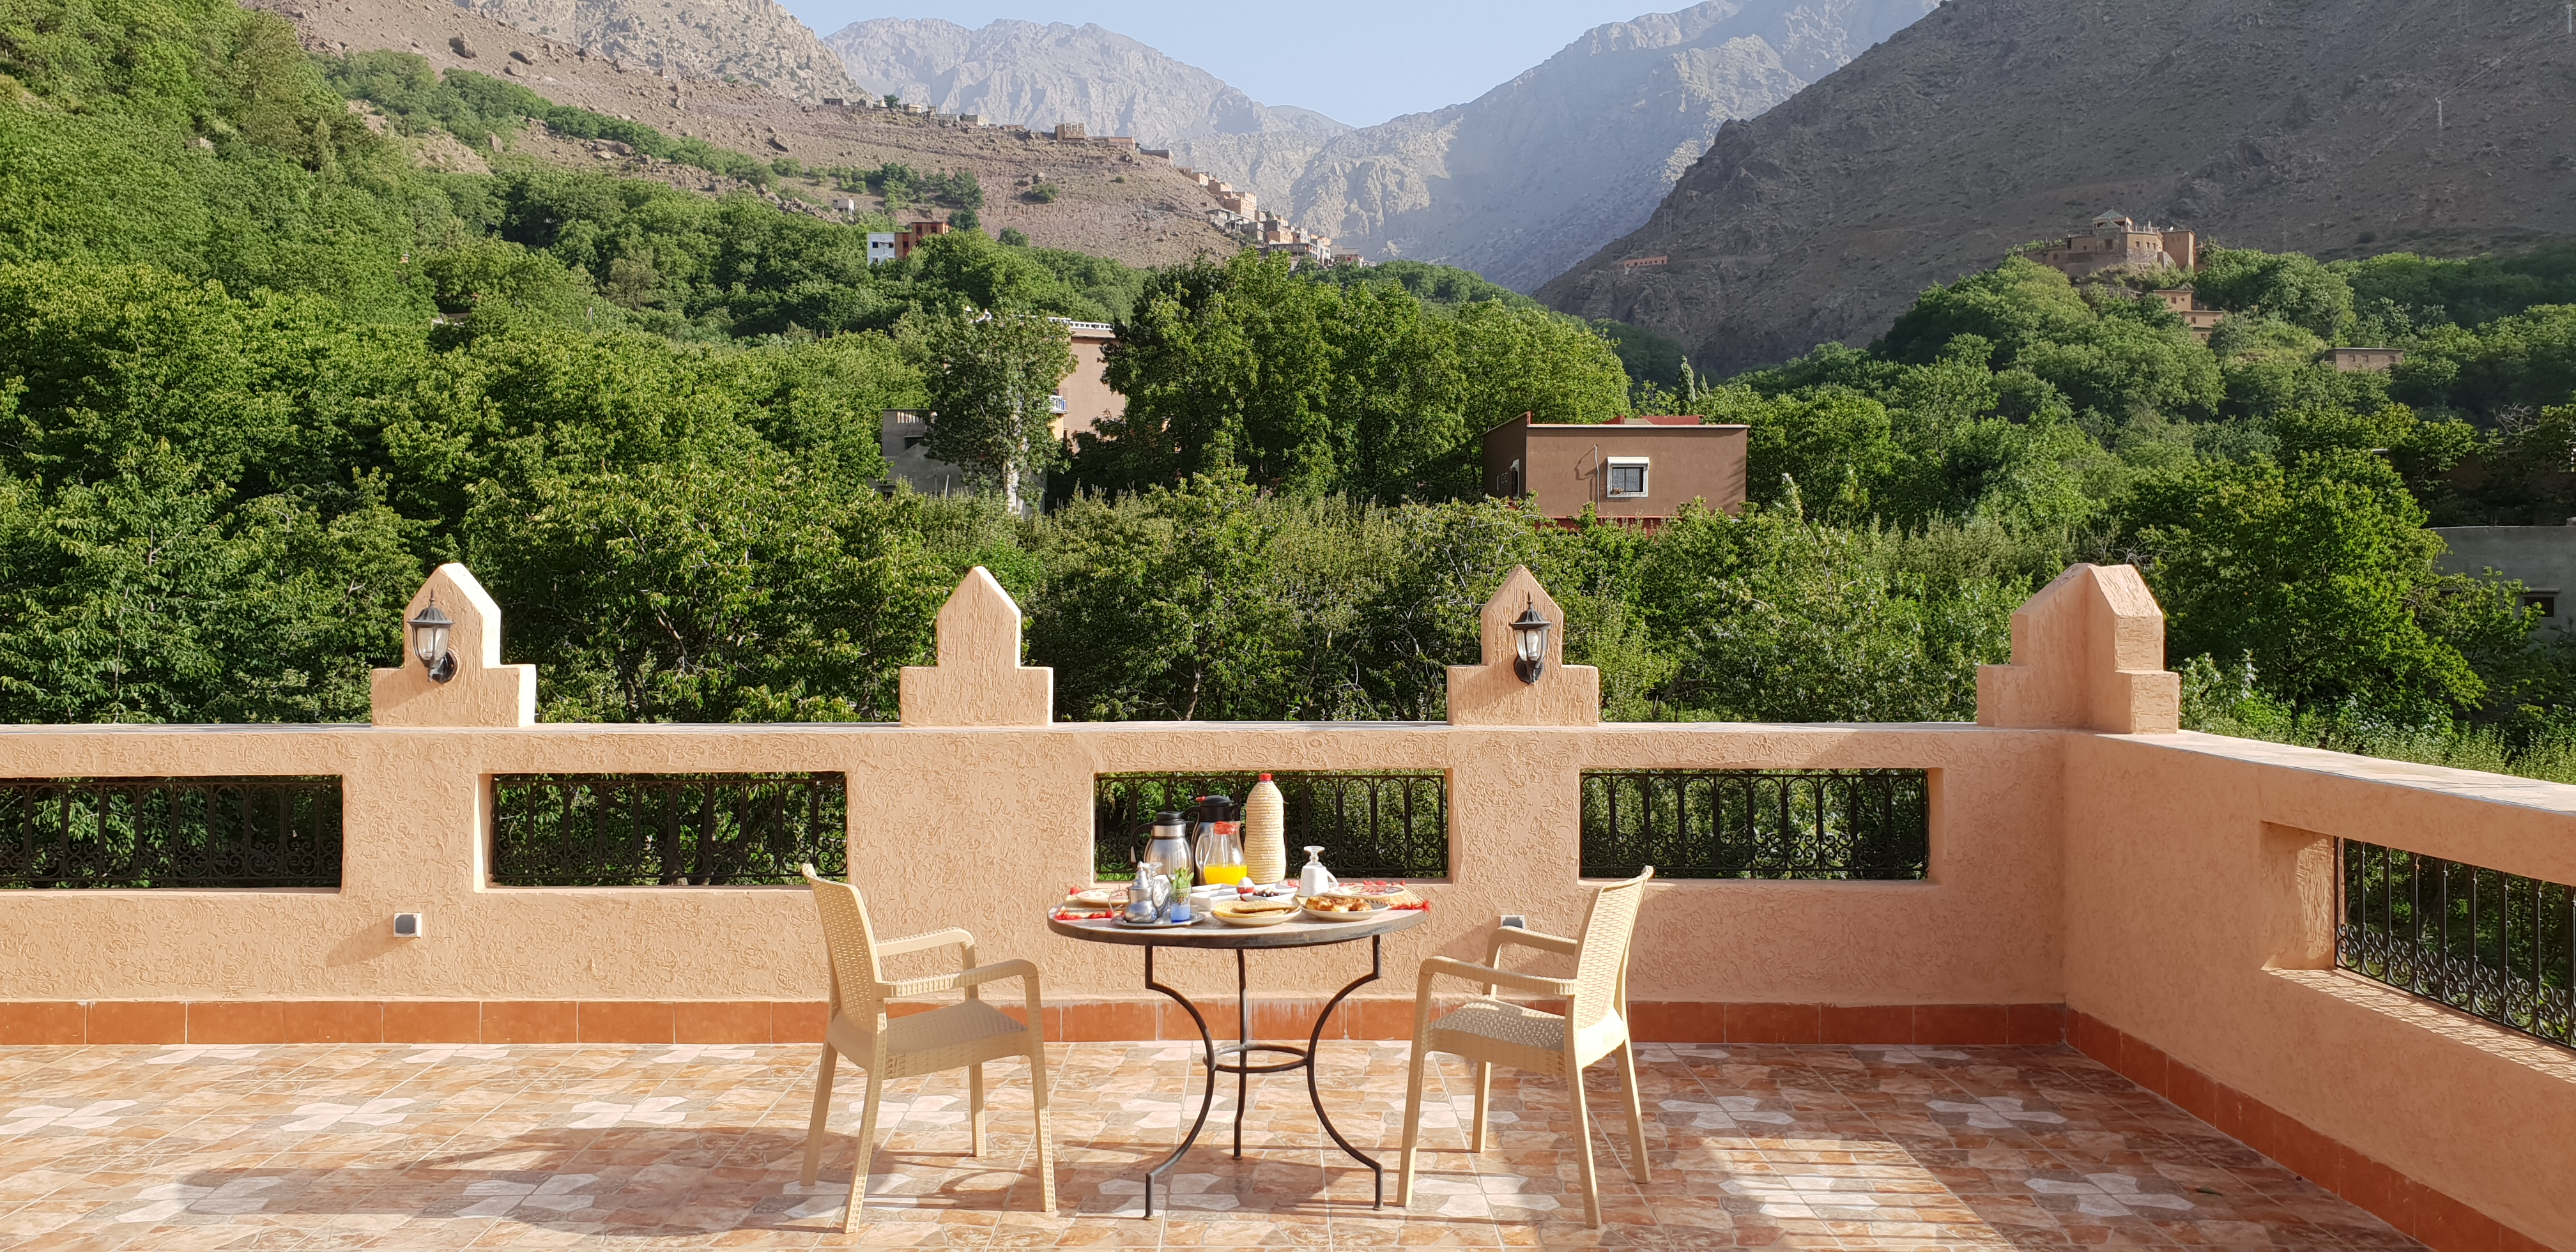 Dar Assarou's Terrace With A View Of Toubkal